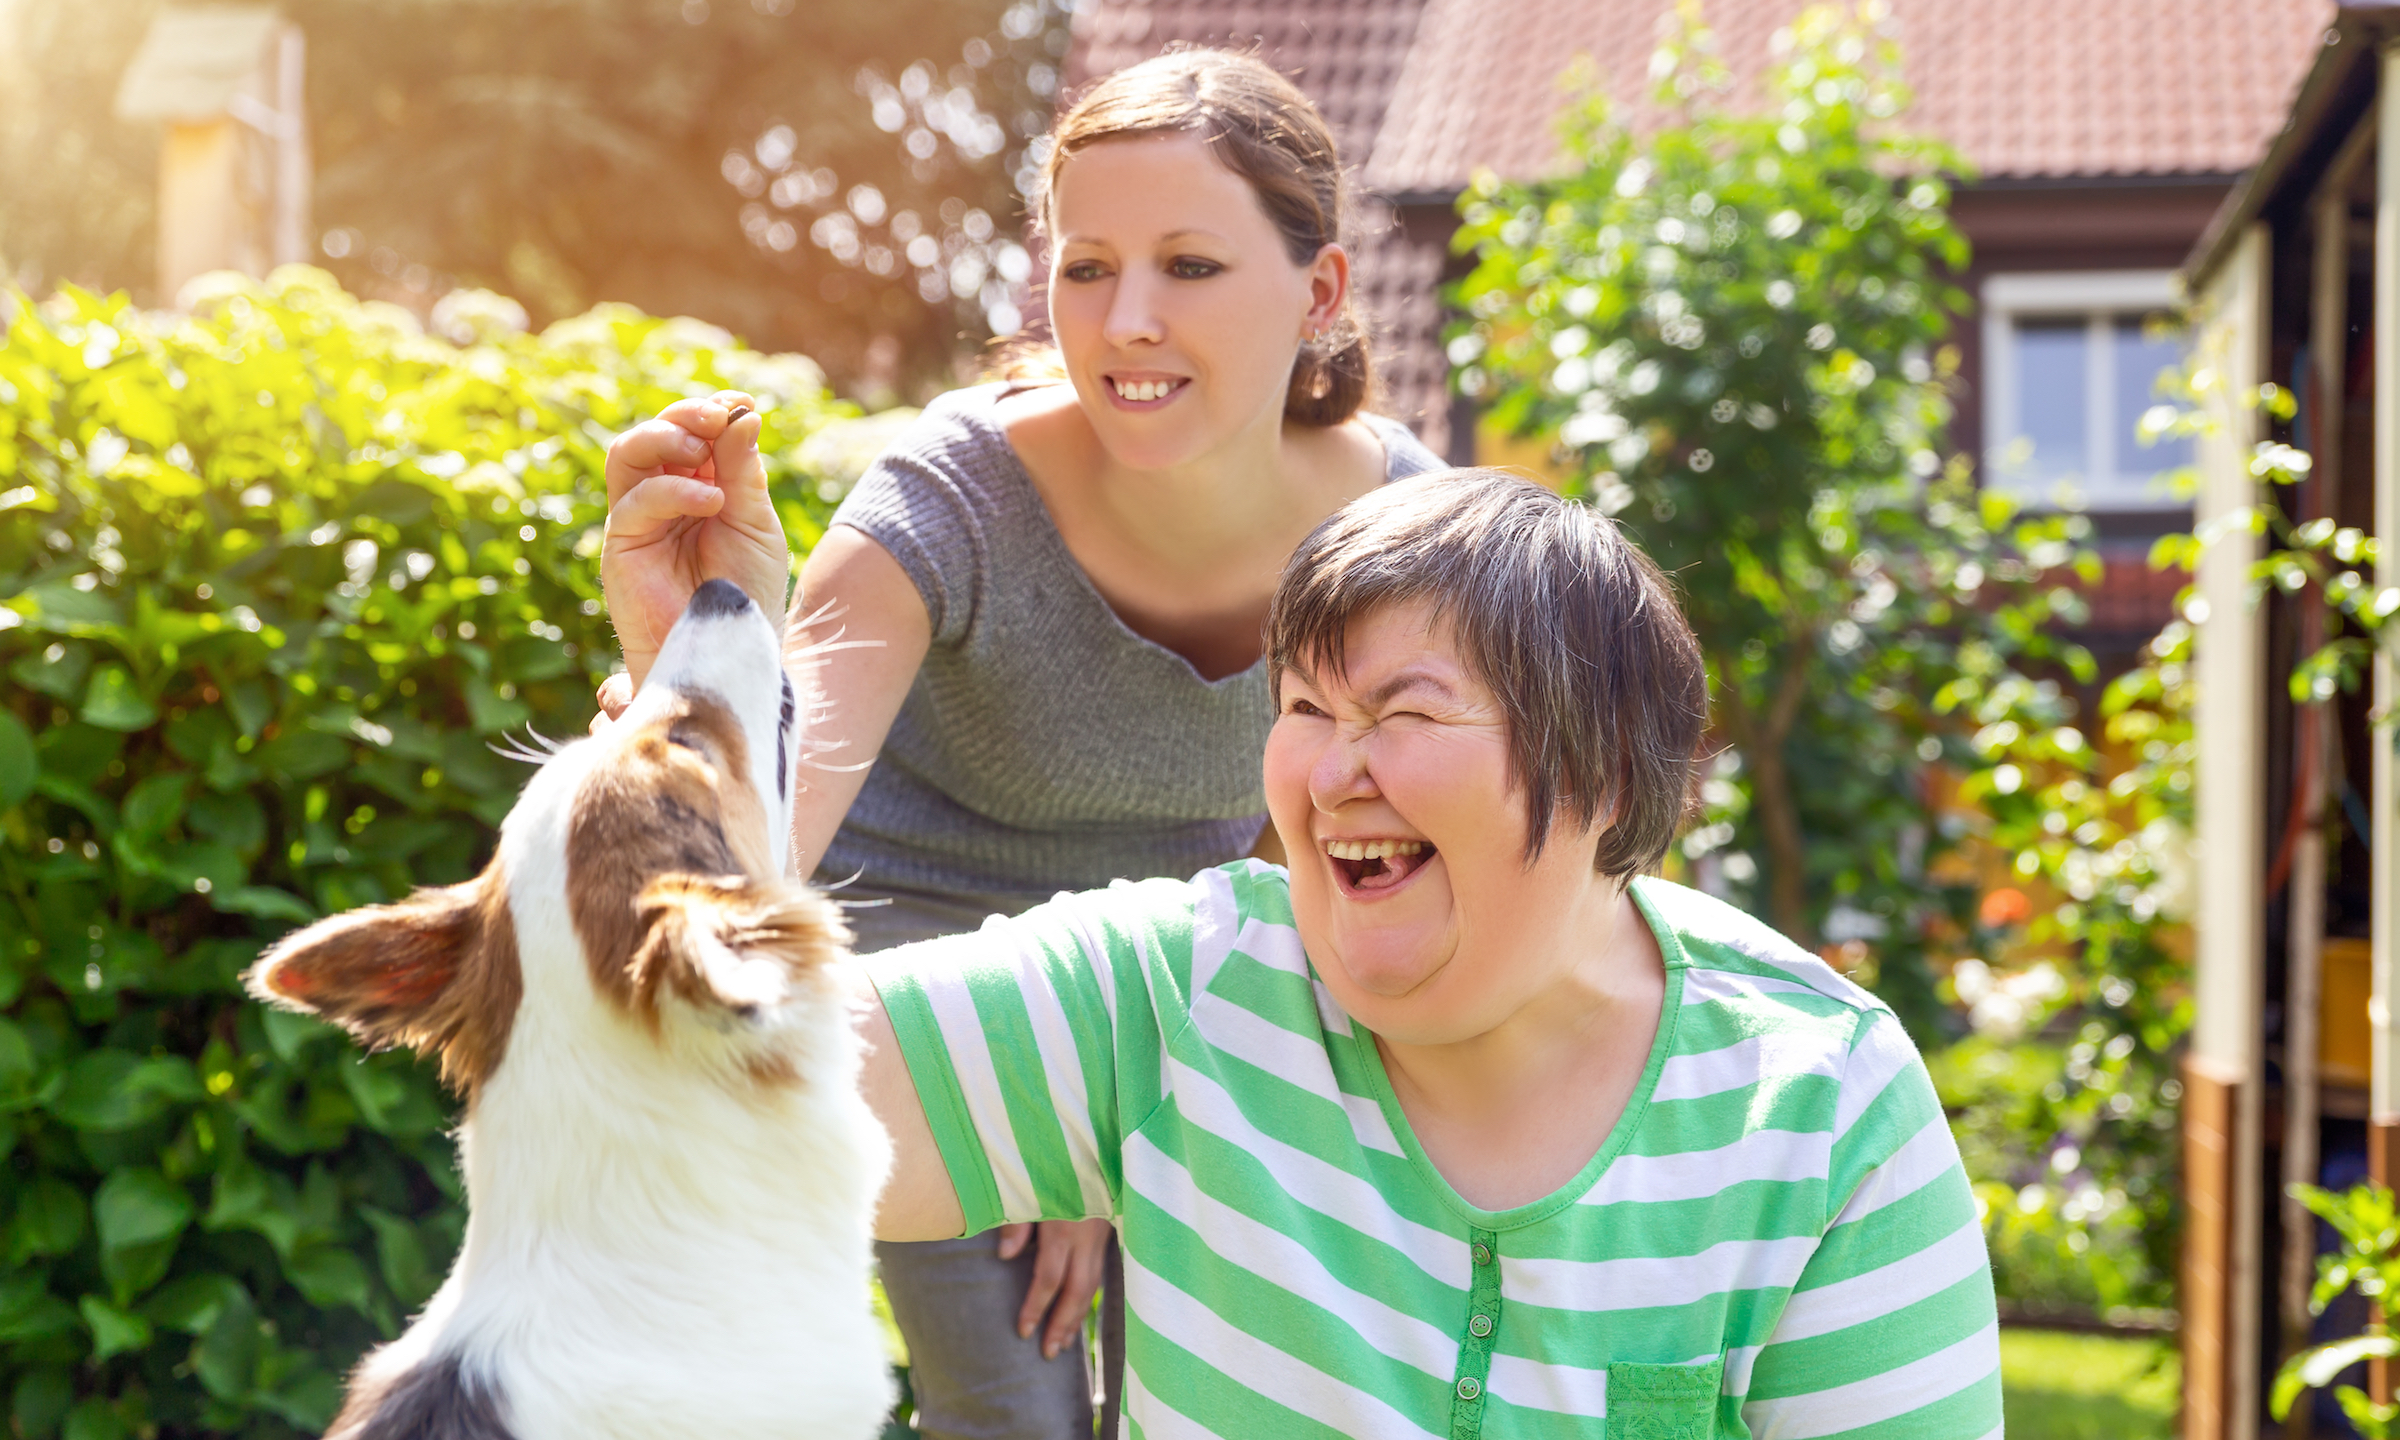 woman gives dog a treat with staff member